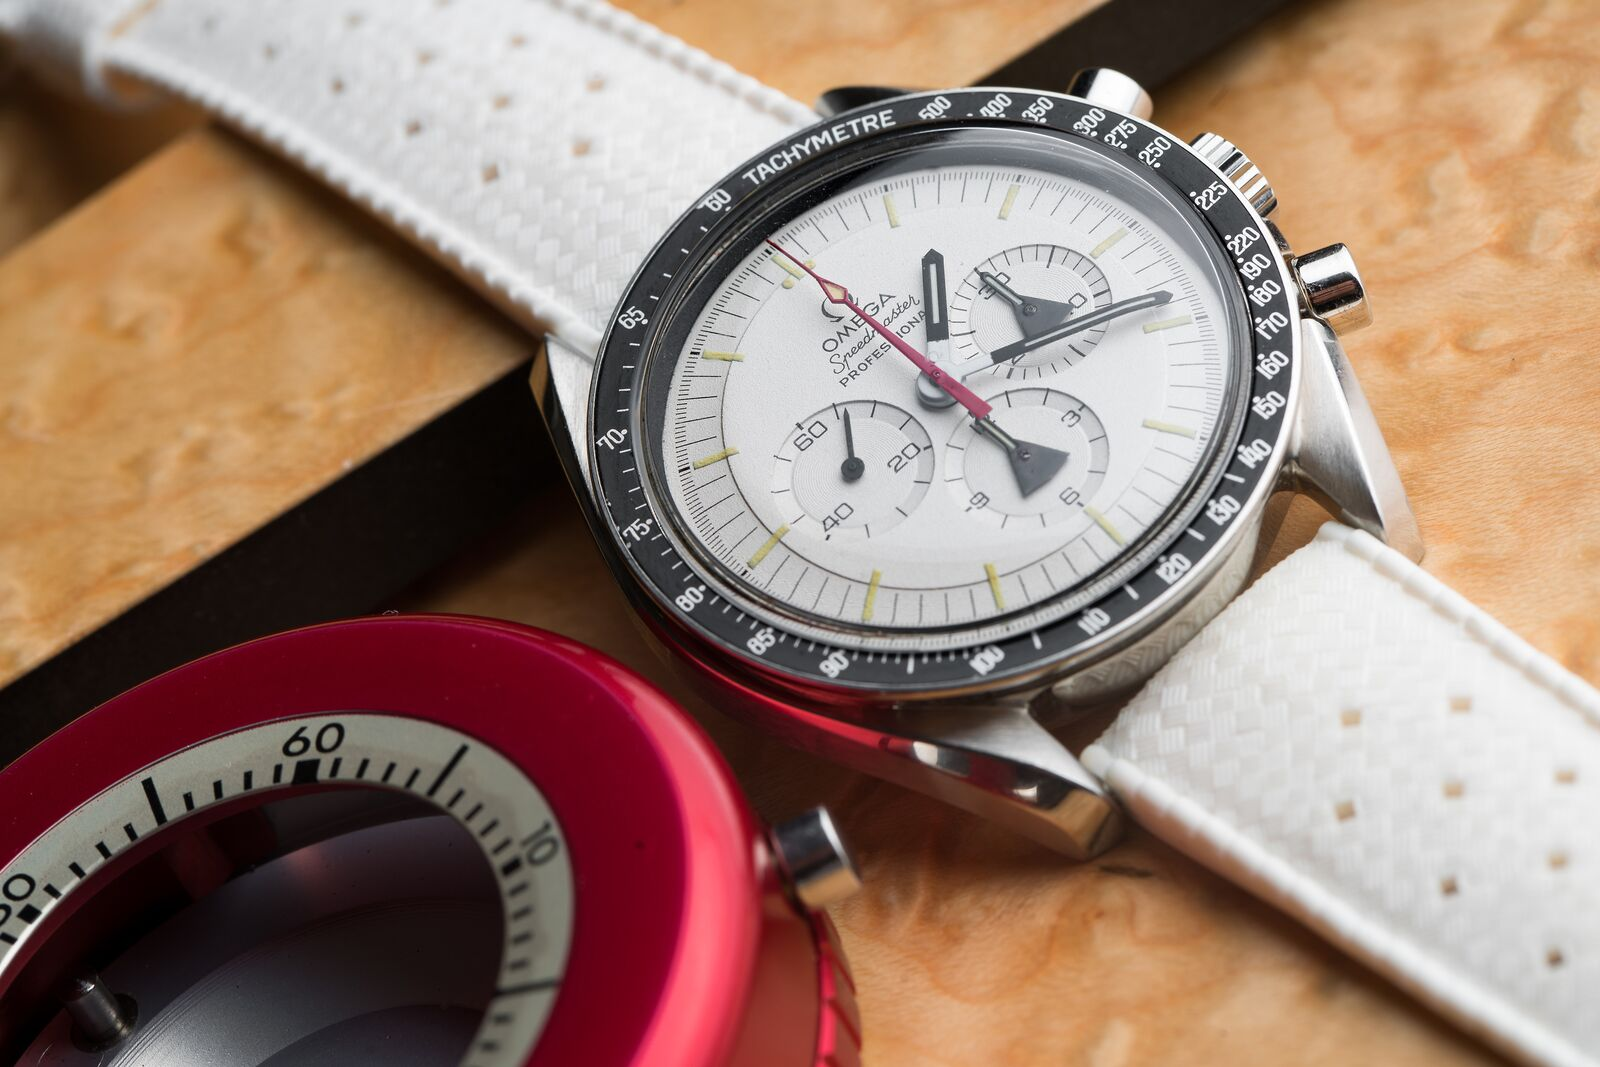 Omega Speedmaster Professional 'Alaska II' Project Watch